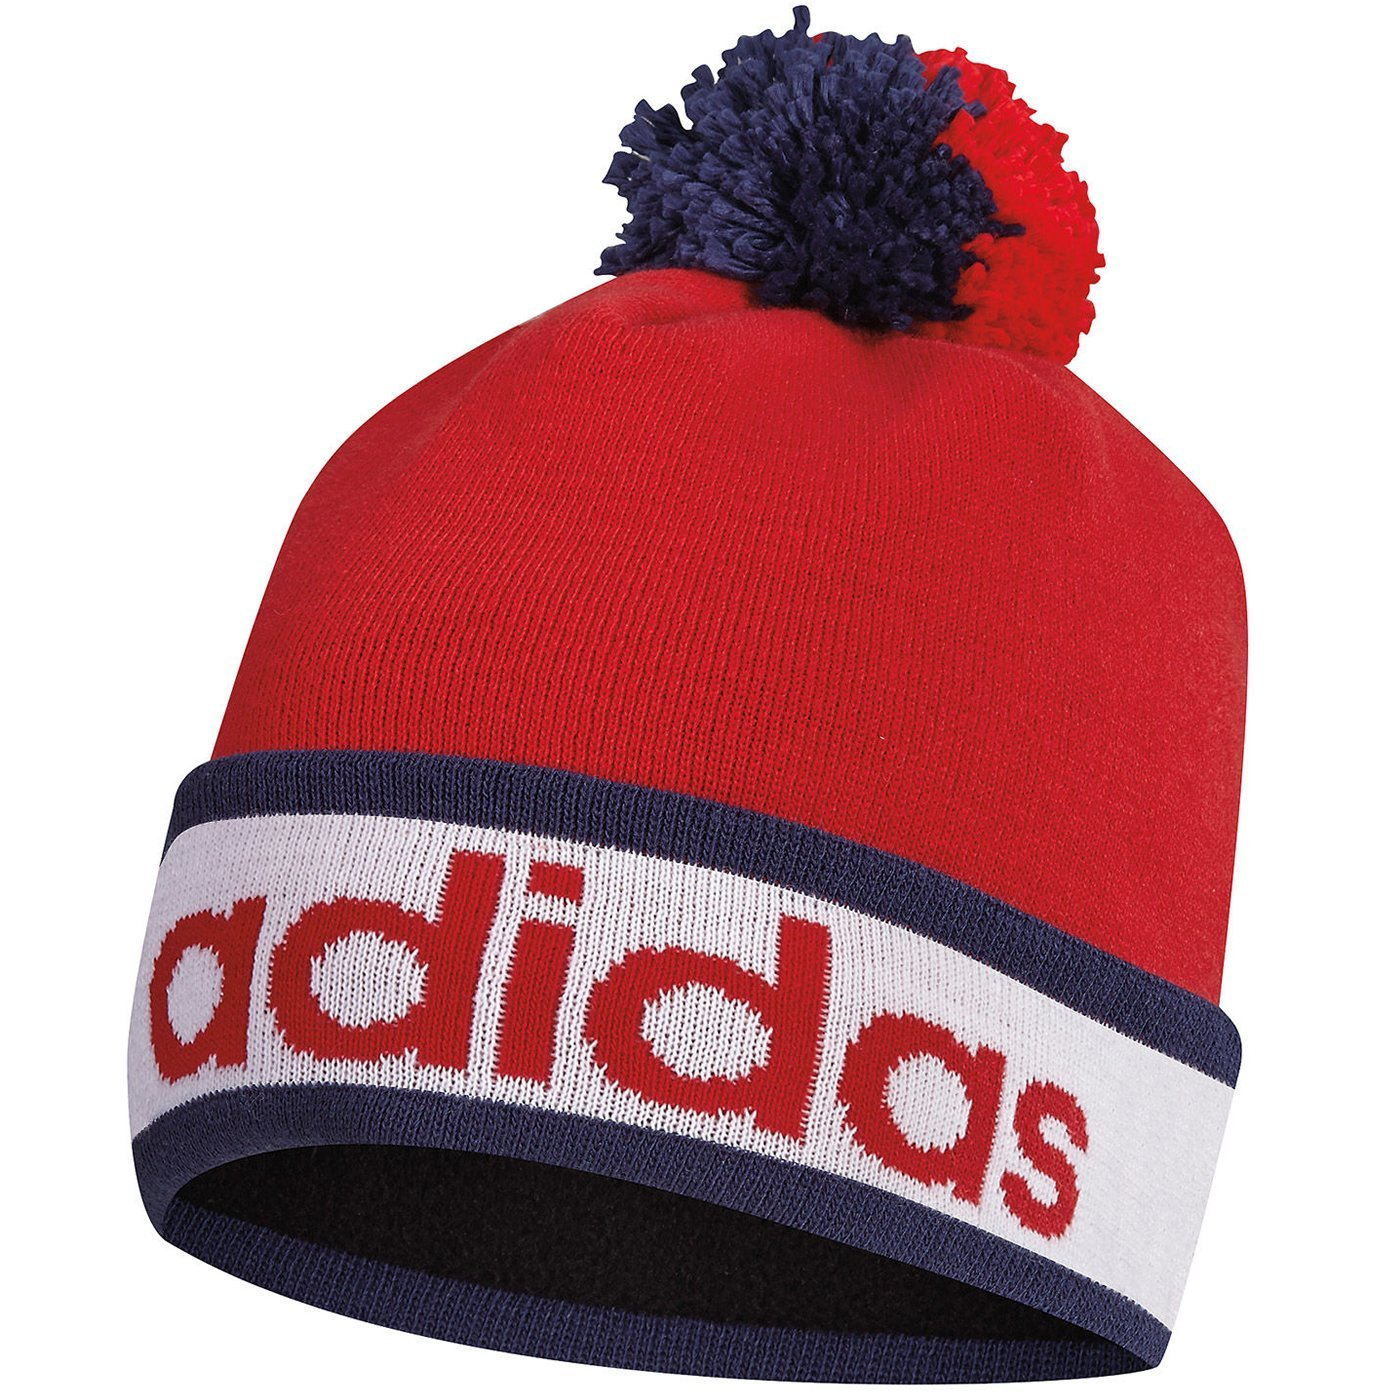 Buy Adidas Mens Golf Beanies for Lowest Prices Online! c5f9808189c